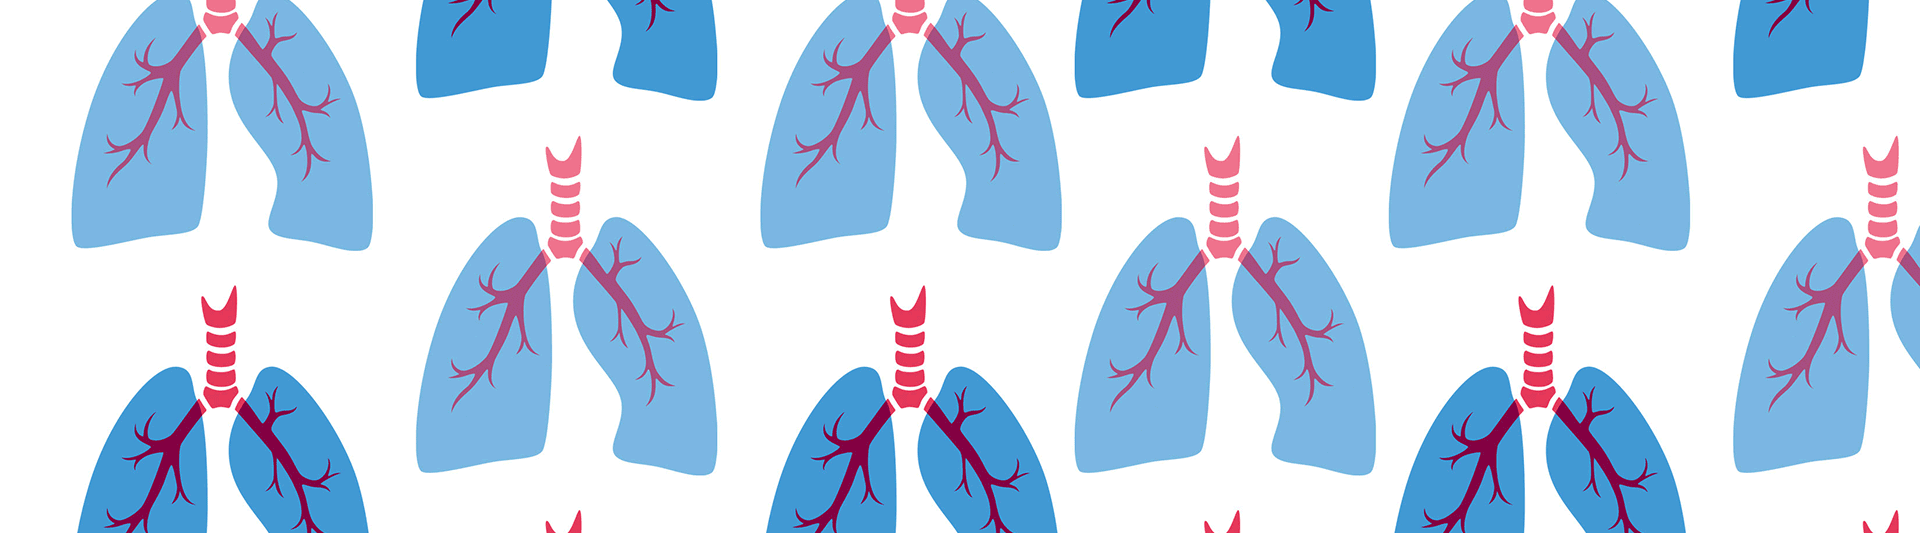 Artificial Intelligence in Lung Cancer, Webinar Recording